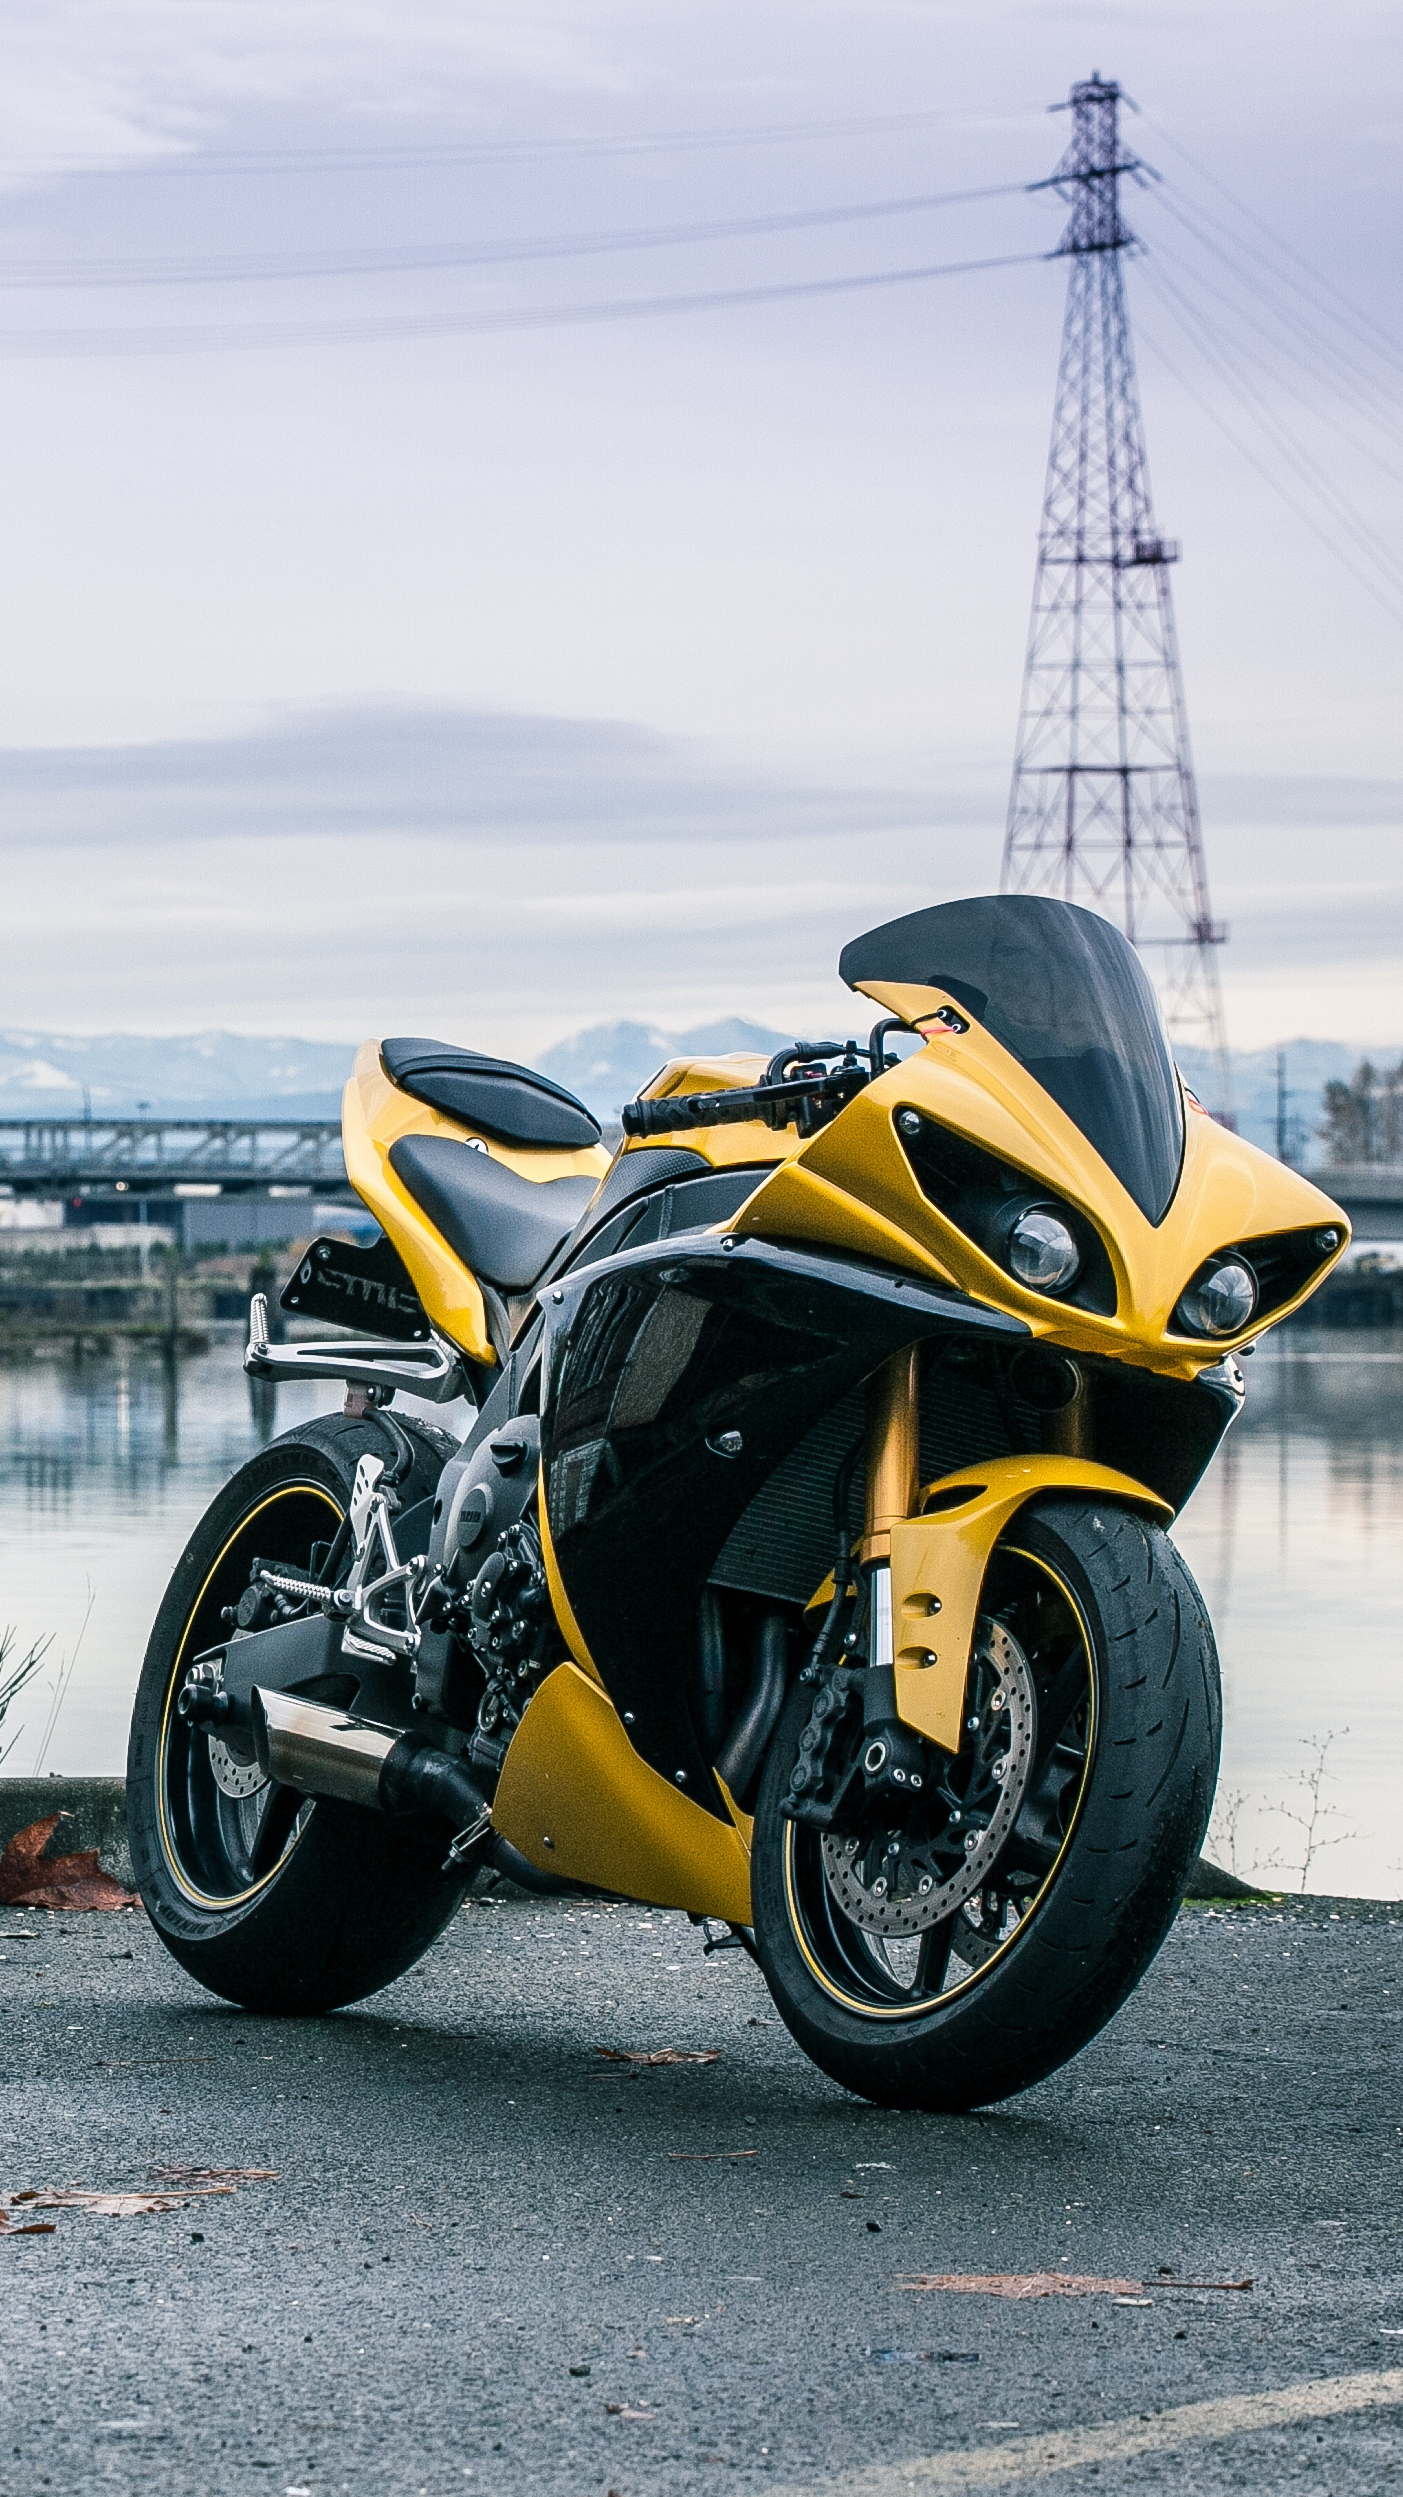 Yamaha-R1-Yellow-iPhone-Wallpaper - iPhone Wallpapers